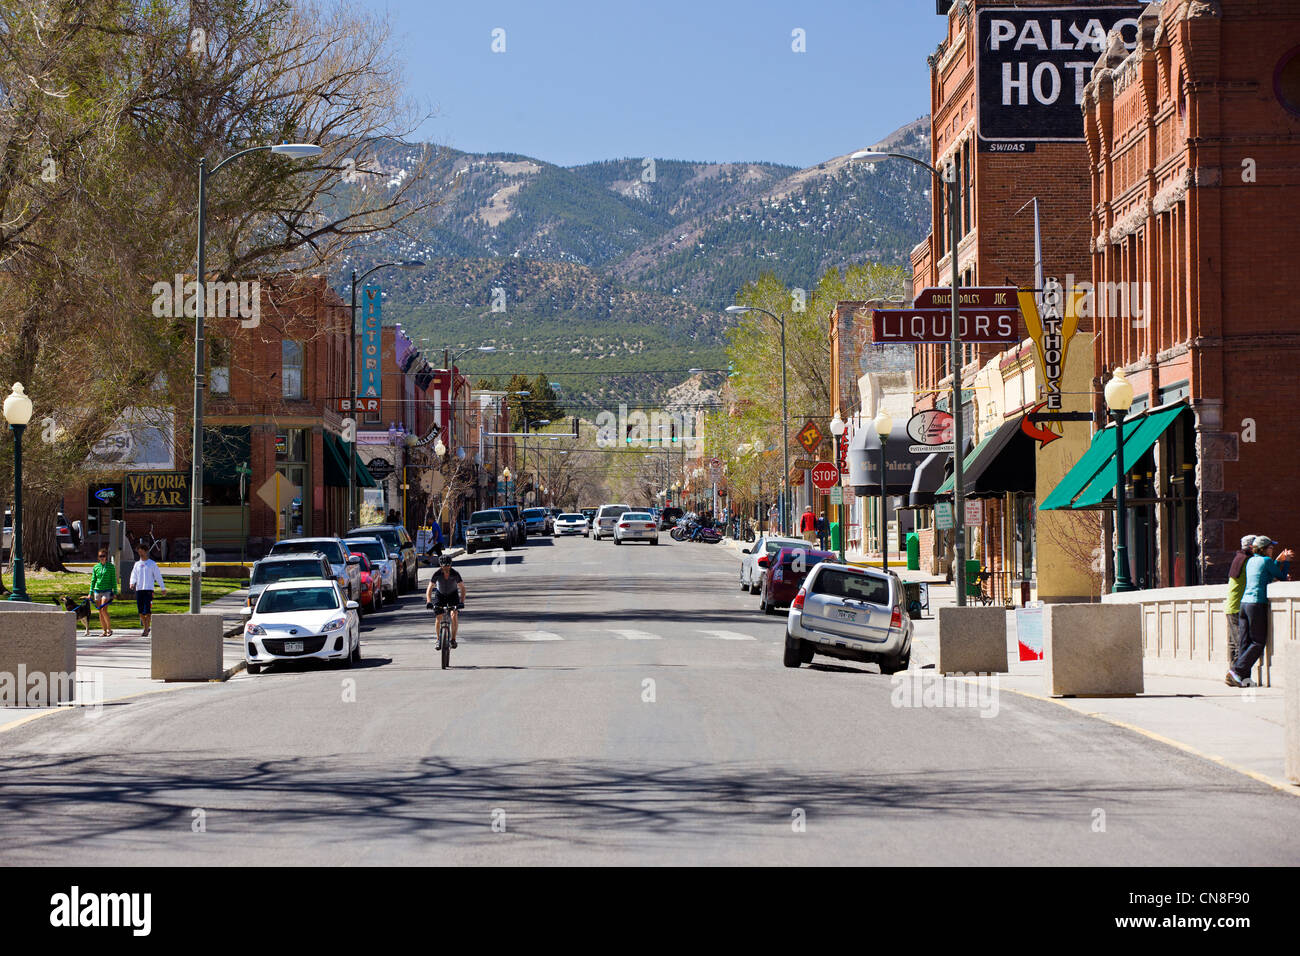 Historic downtown district, small mountain town of Salida, Colorado, USA - Stock Image